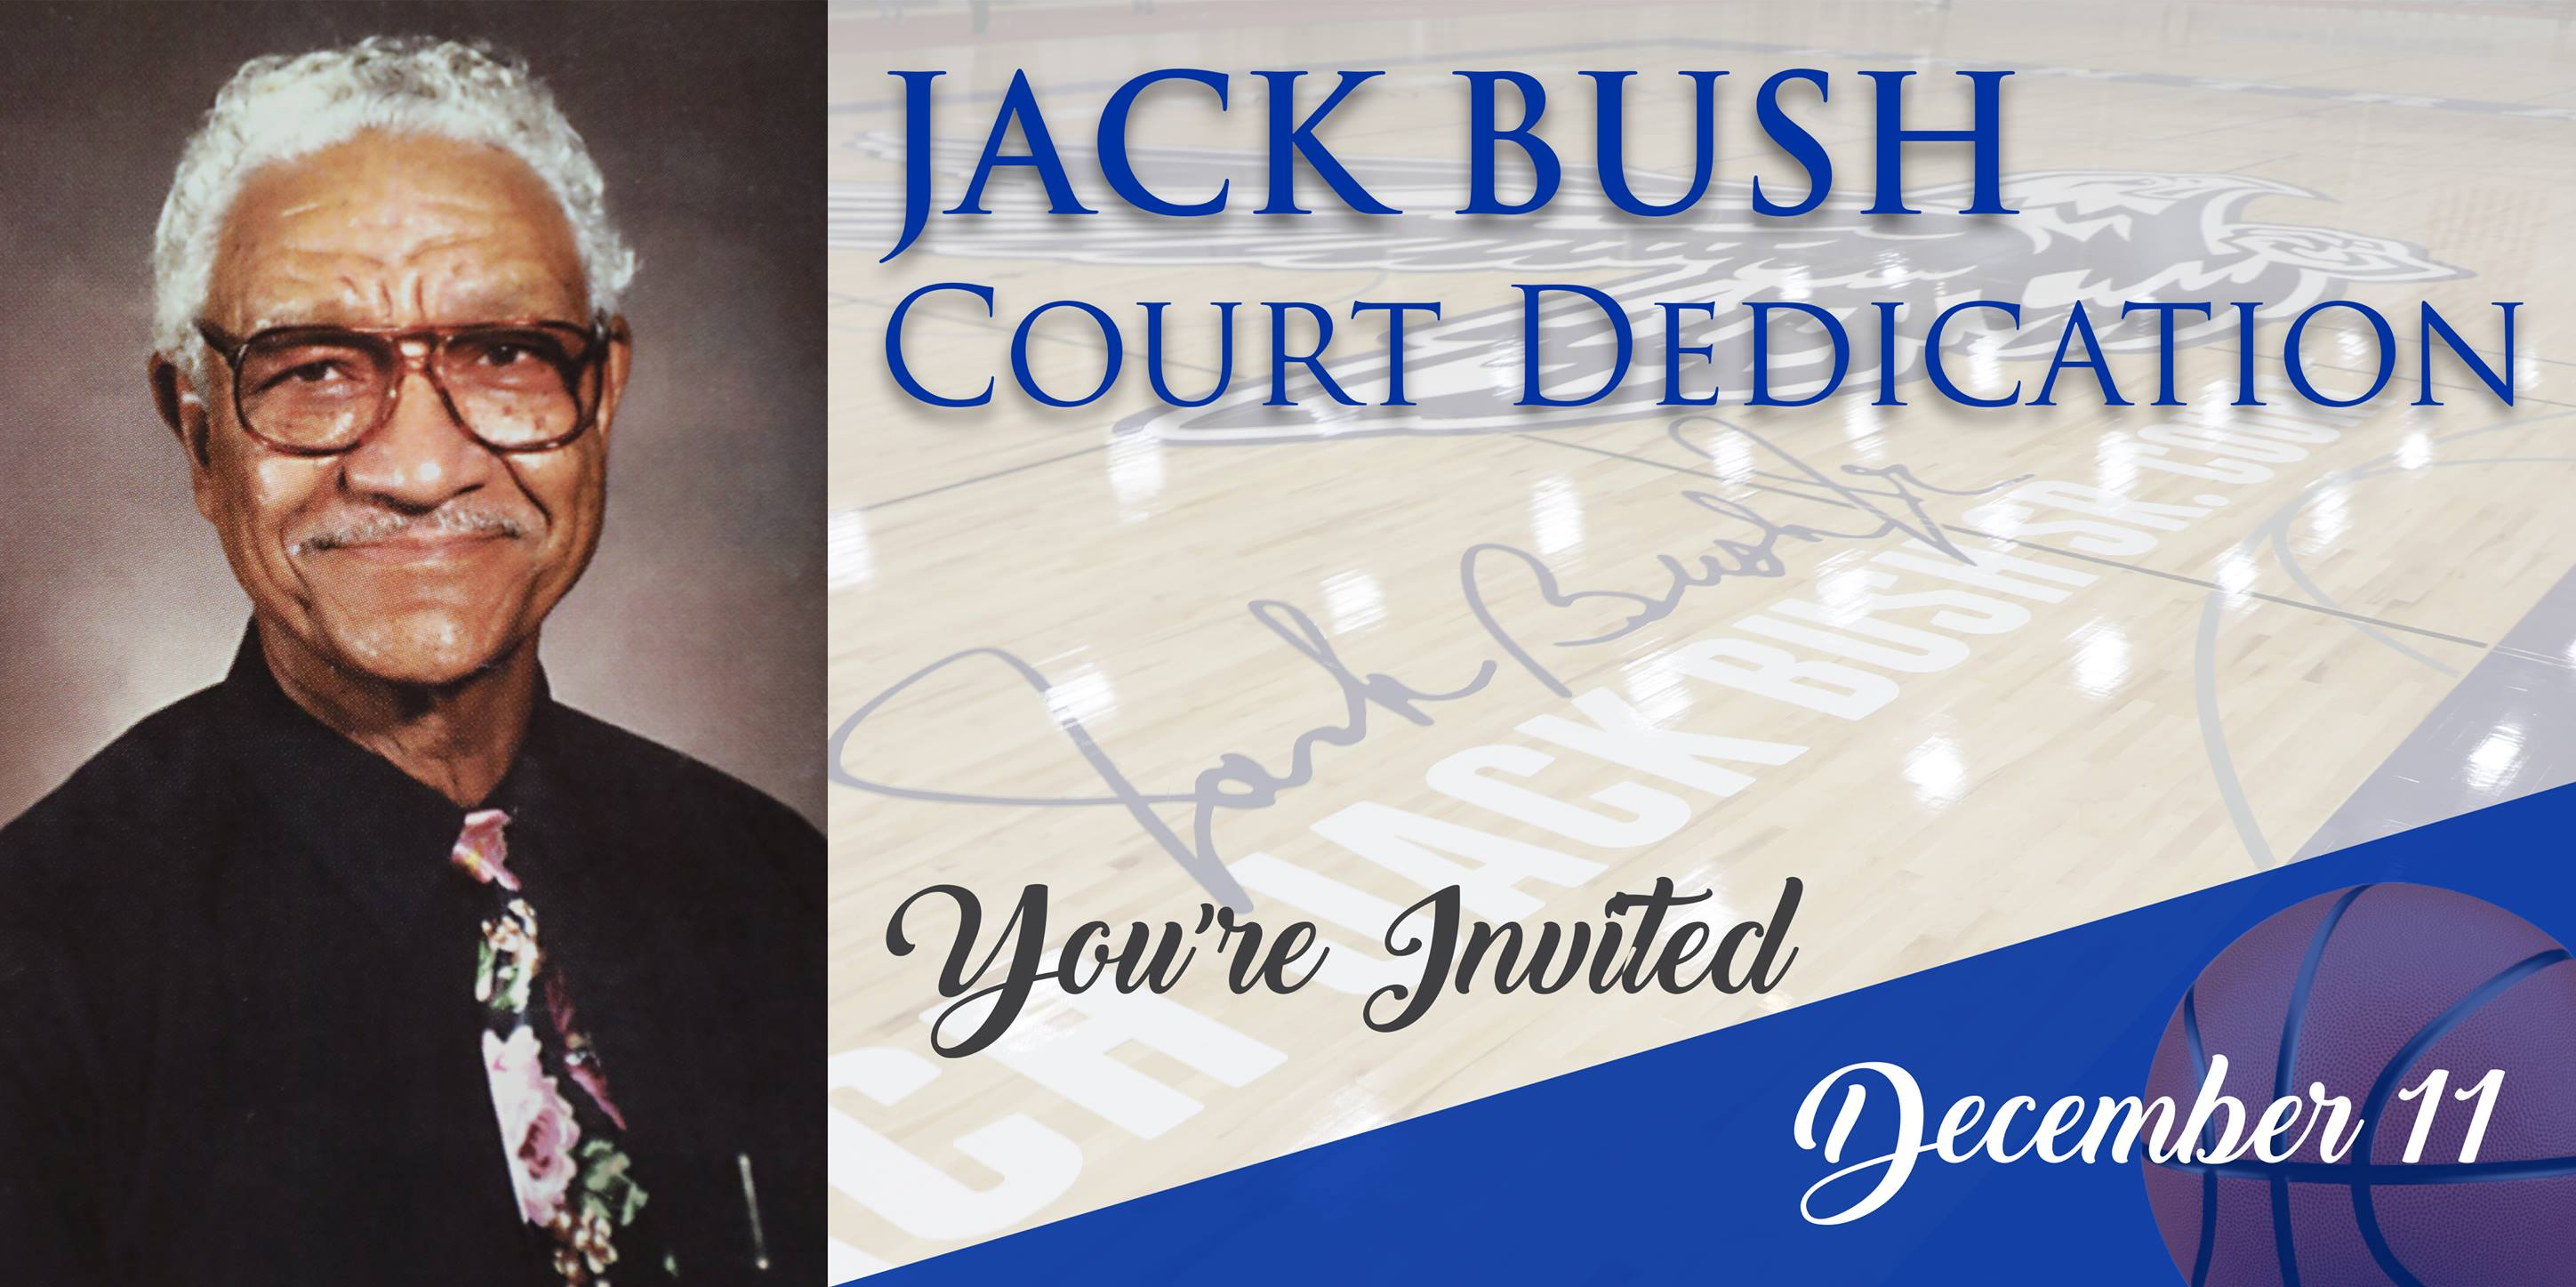 JACK BUSH COURT DEDICATION